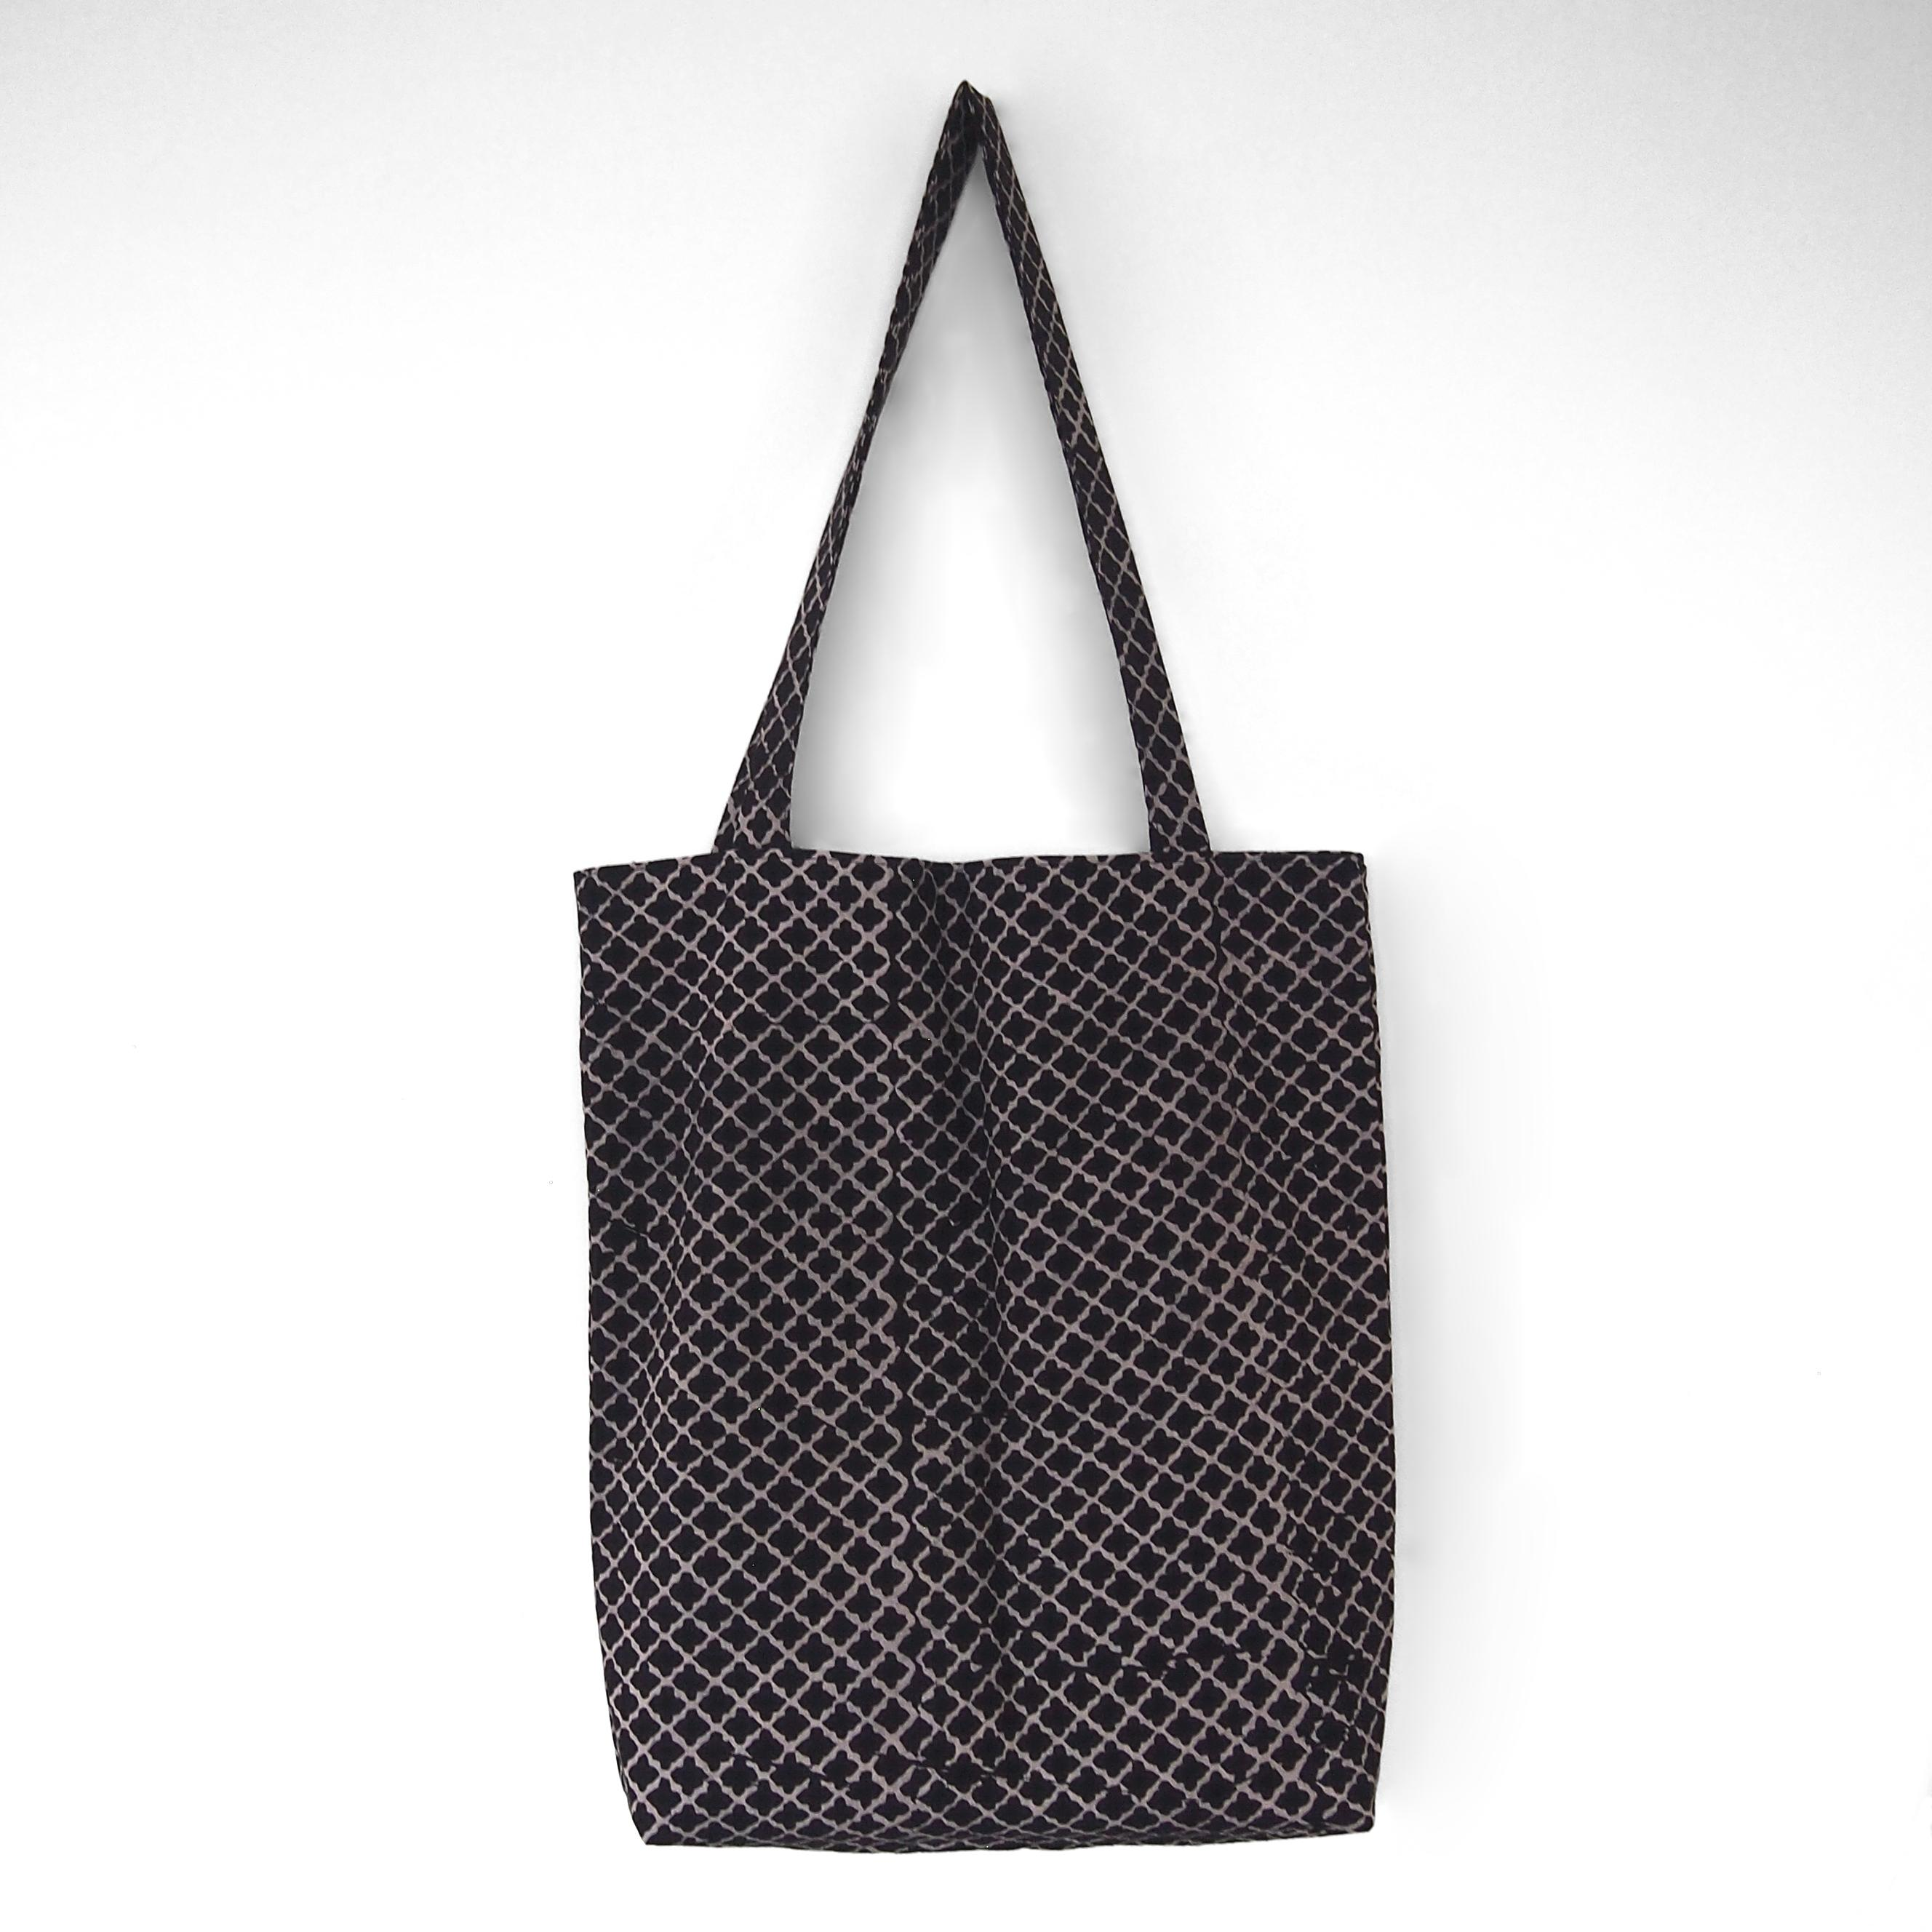 block printed cotton tote bag, natural dye, black, beige clover, lined with black cotton, closed